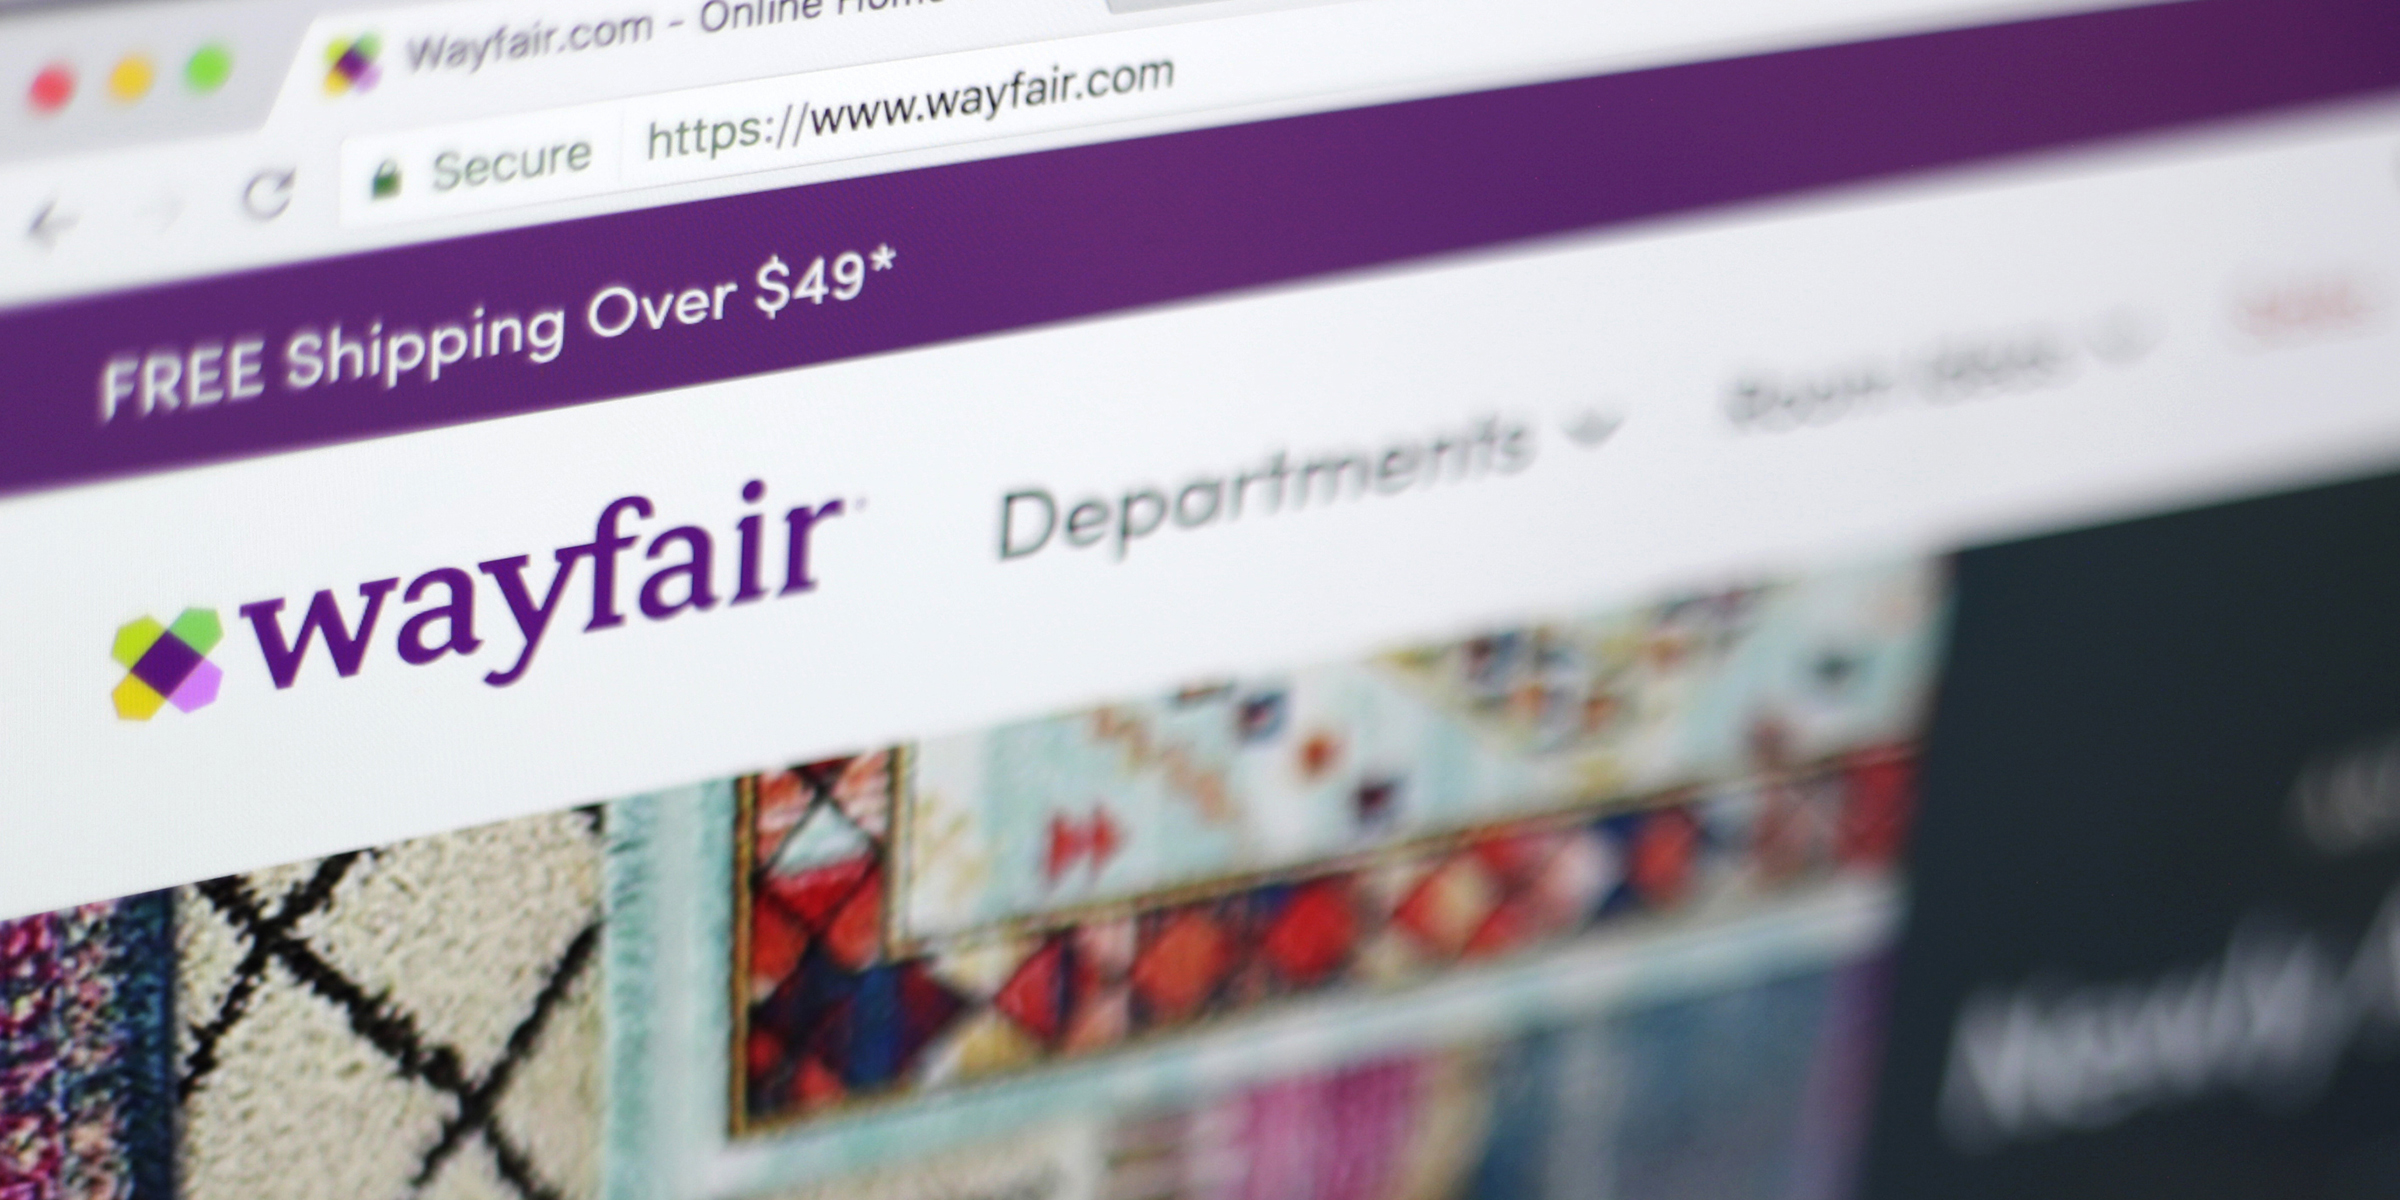 Wayfair employees are walking out in protest over migrant facilities